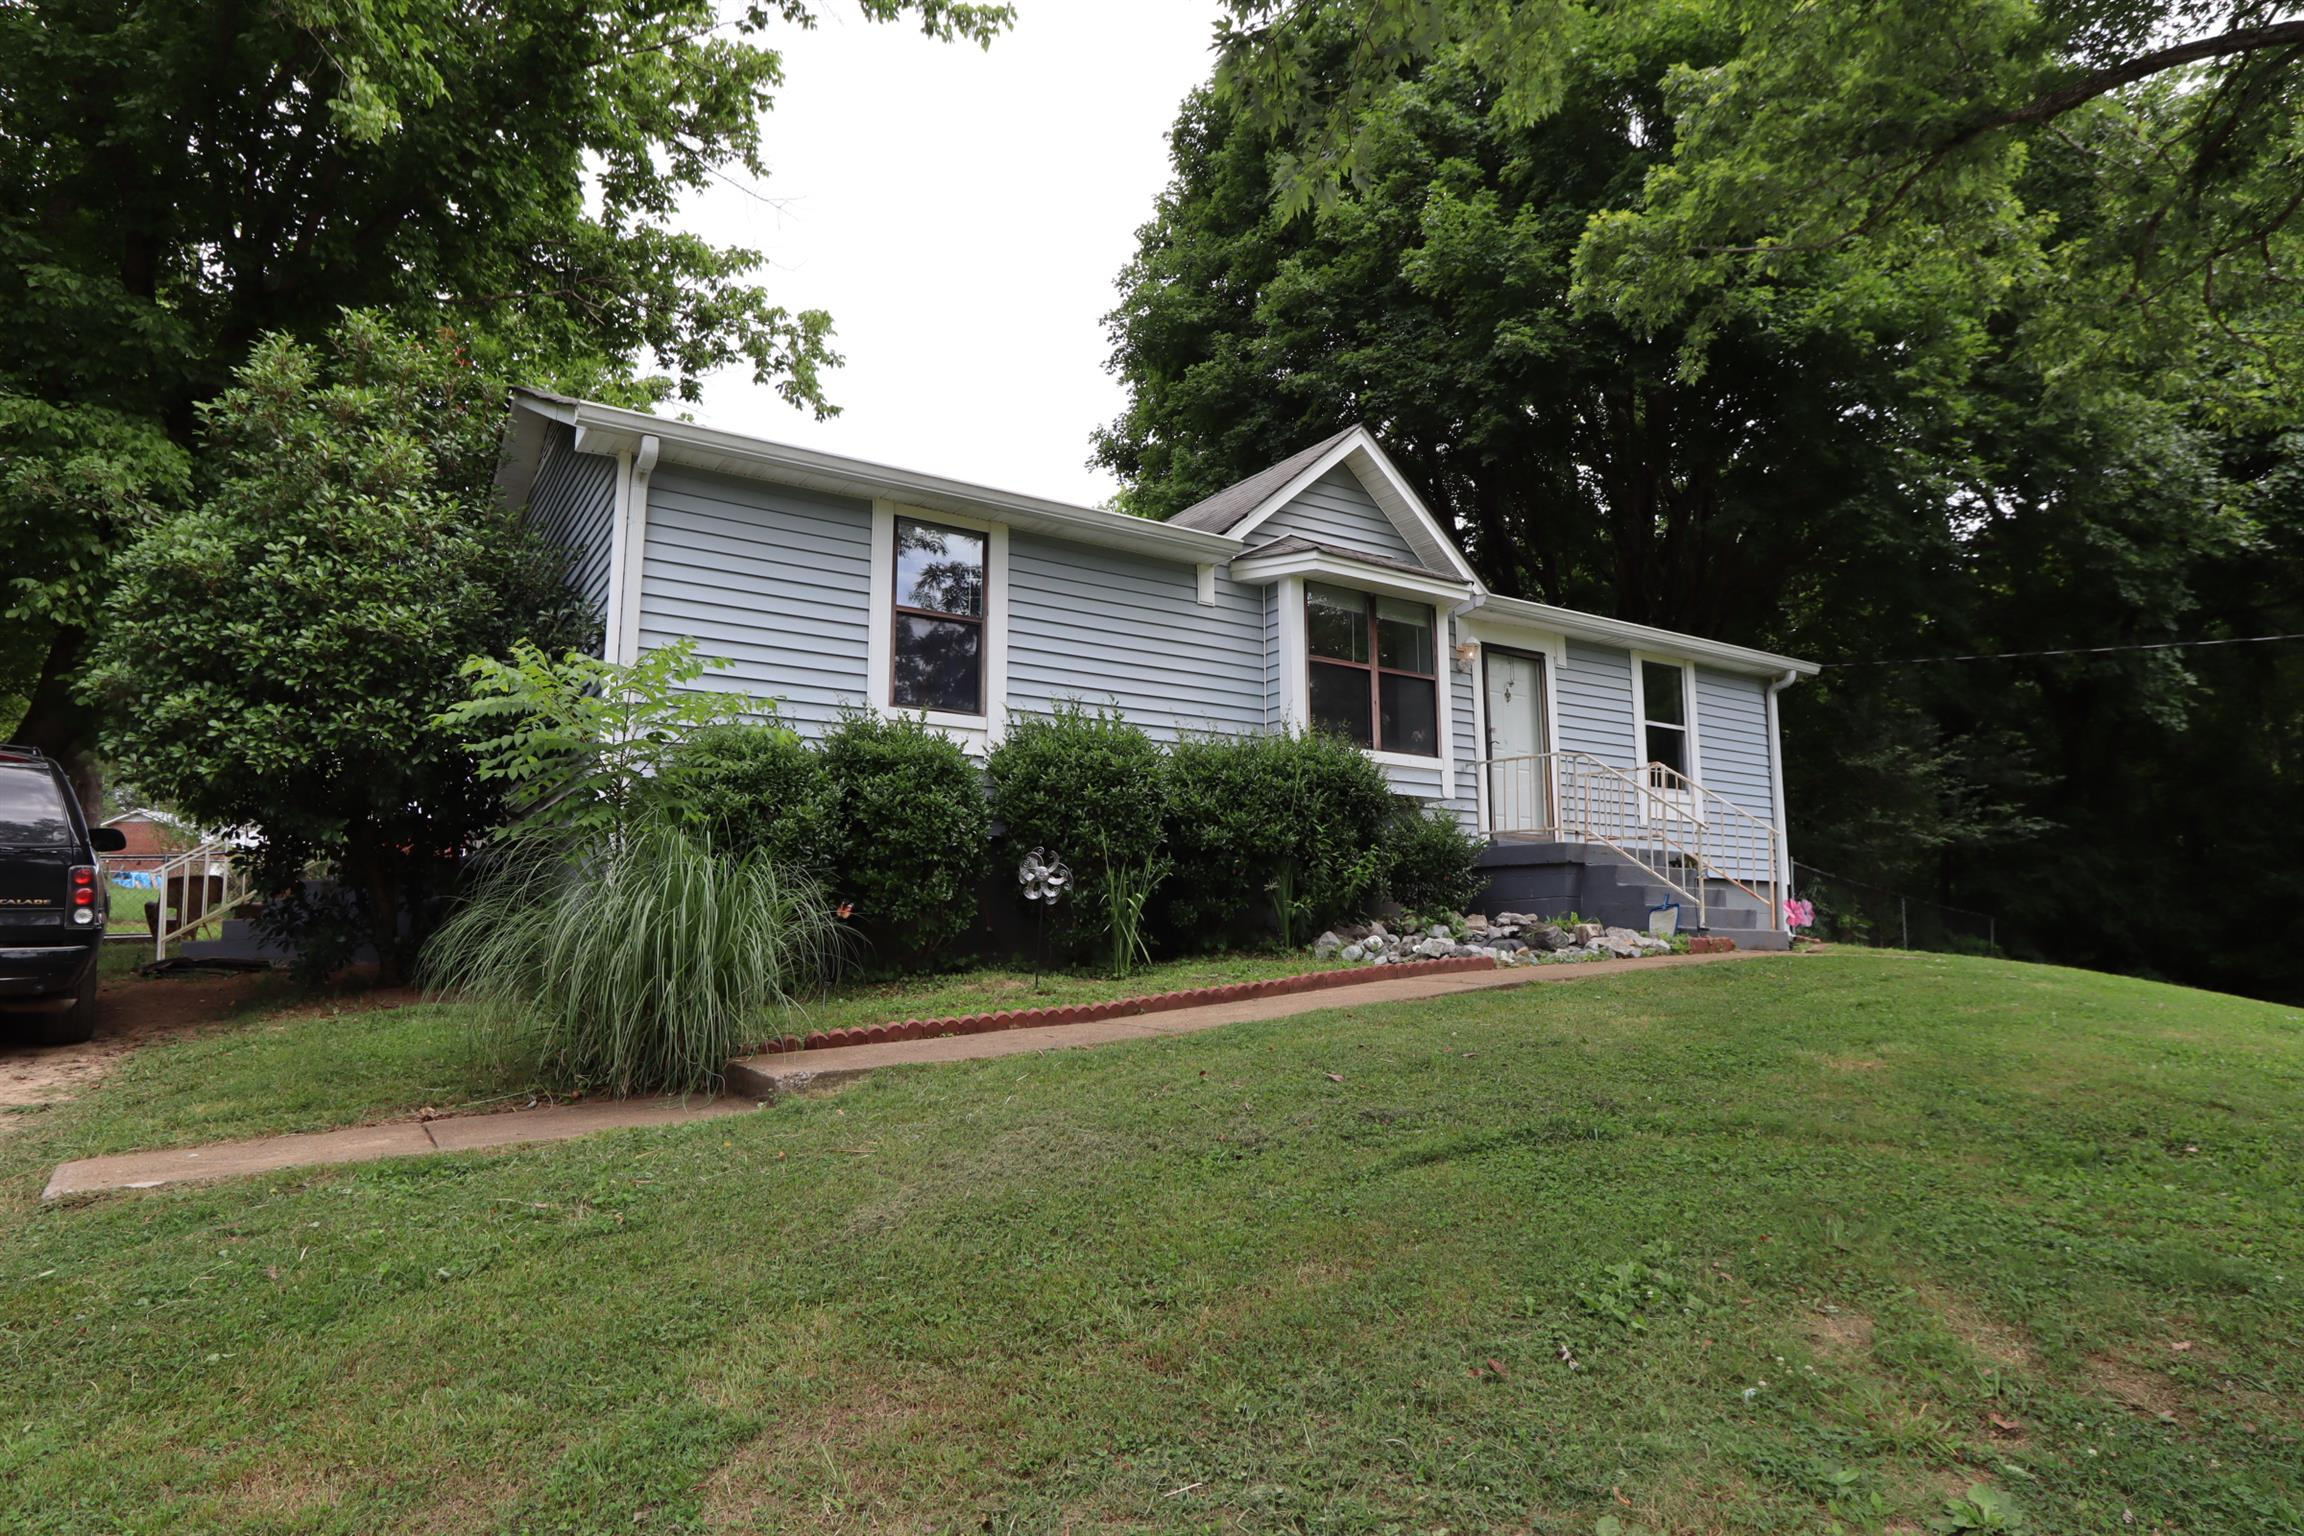 7109 Sweetgum Rd, Fairview in Williamson County County, TN 37062 Home for Sale